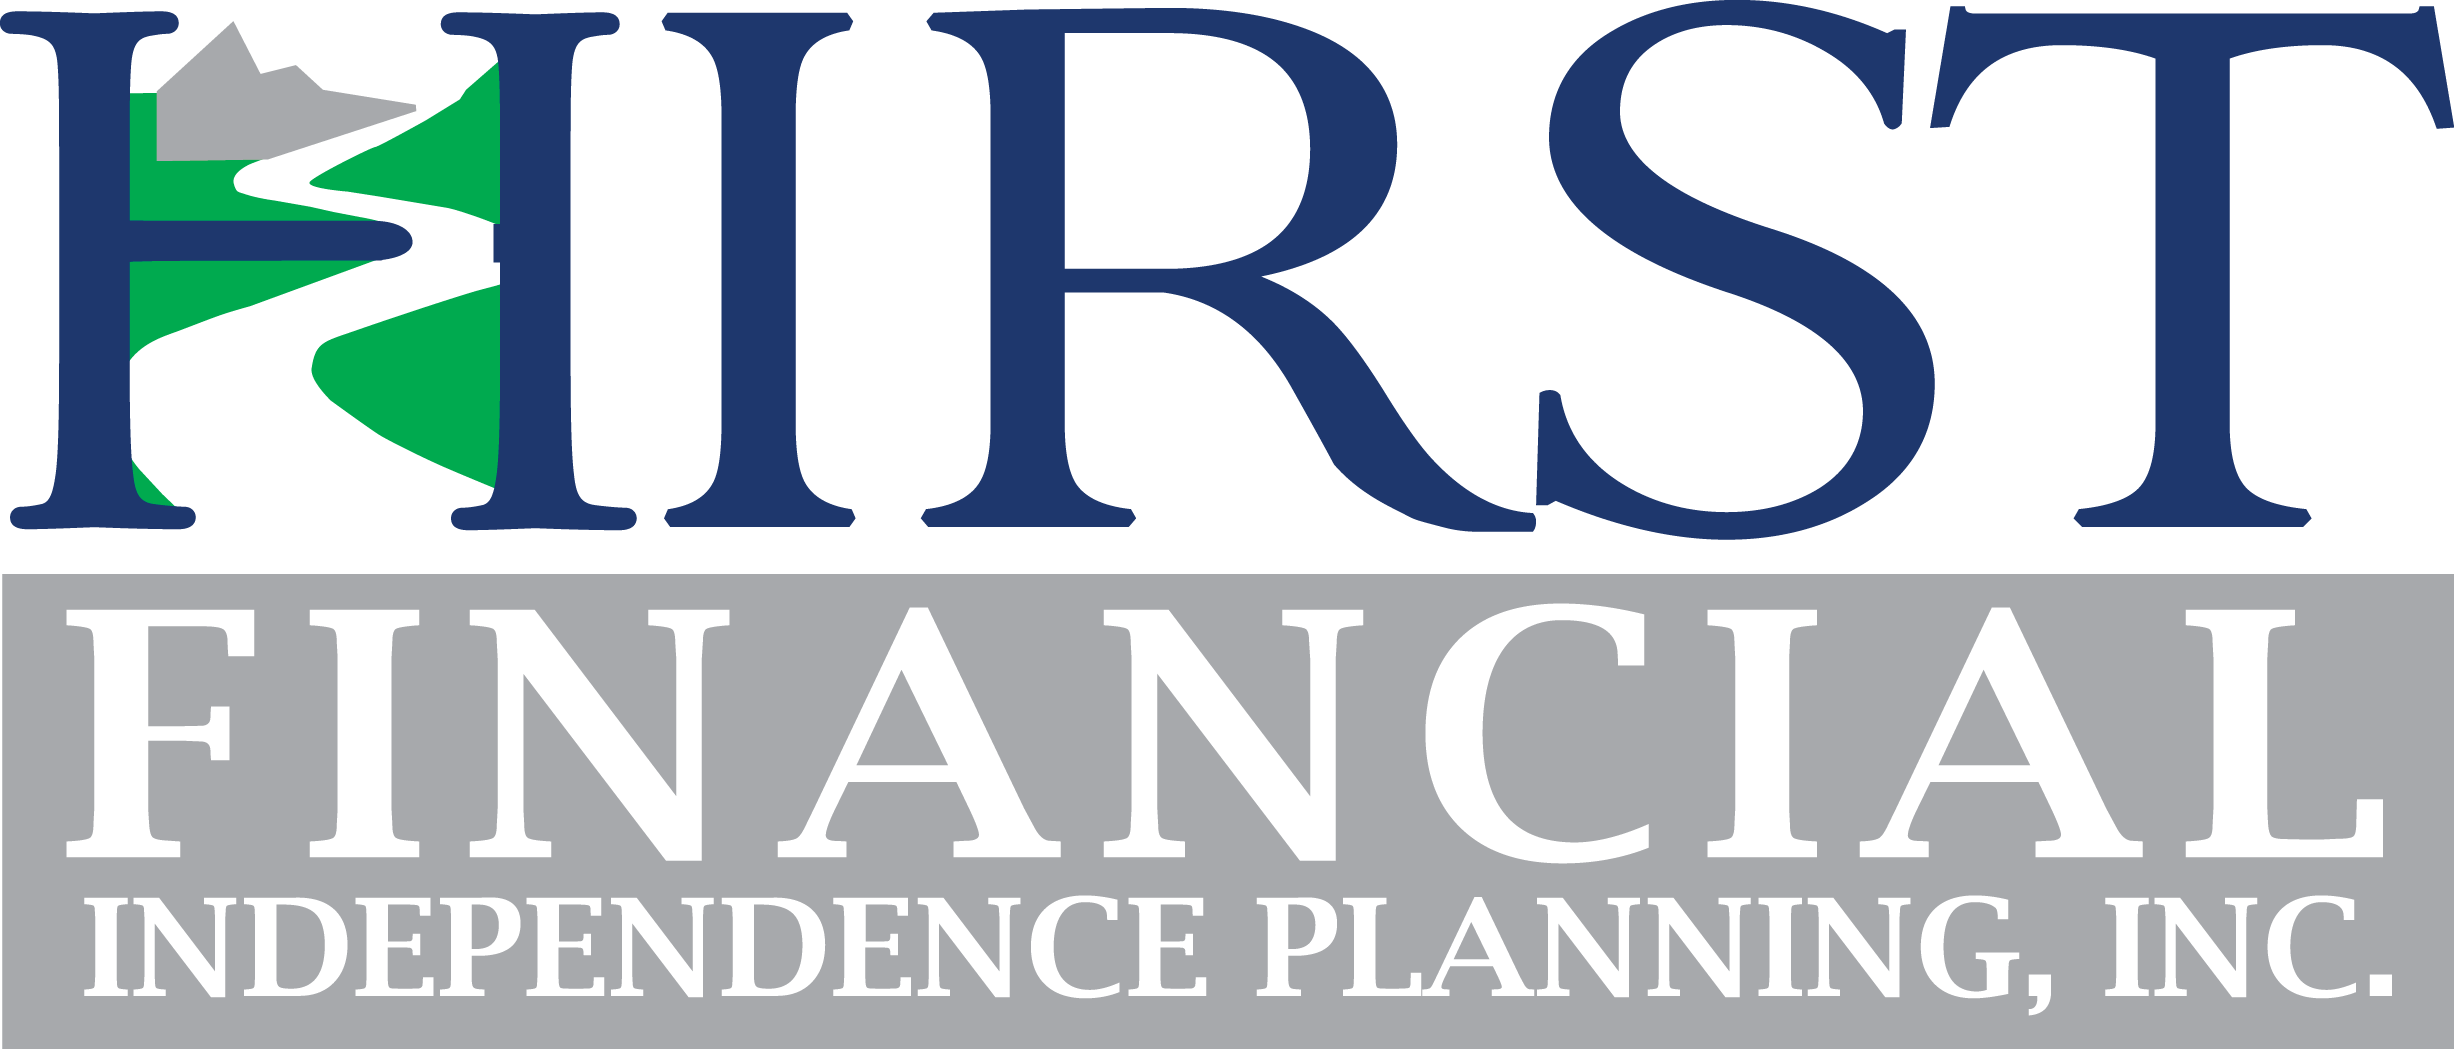 Hirst Financial Independence Planning Inc.